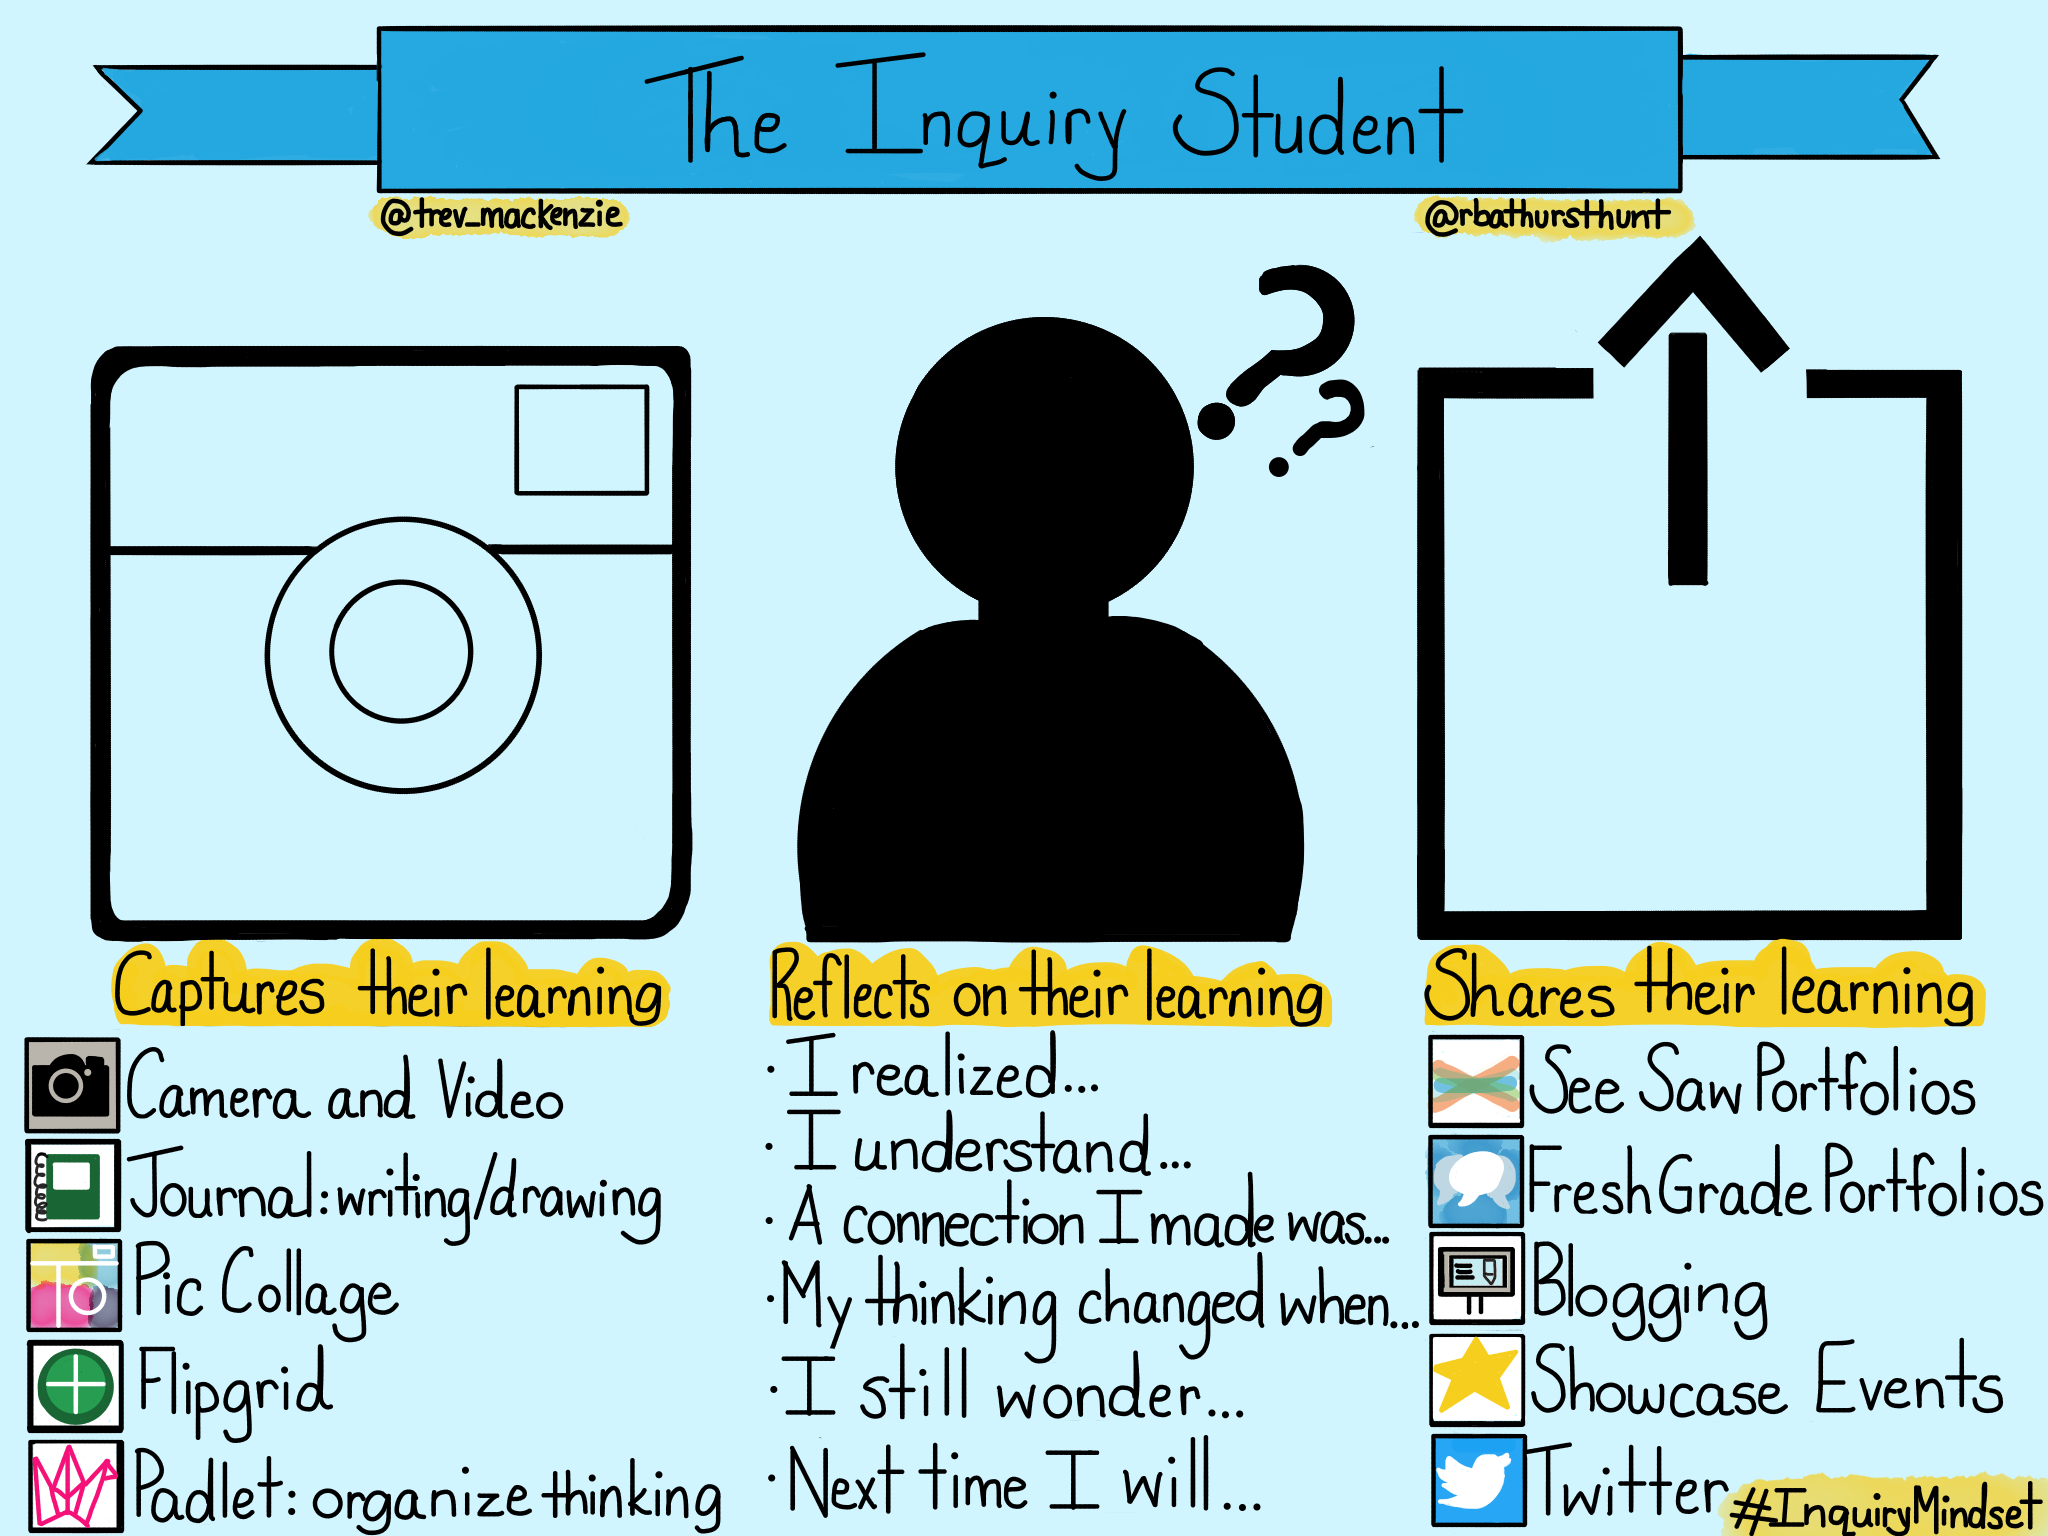 Four Inquiry Qualities At The Heart of Student-Centered Teaching